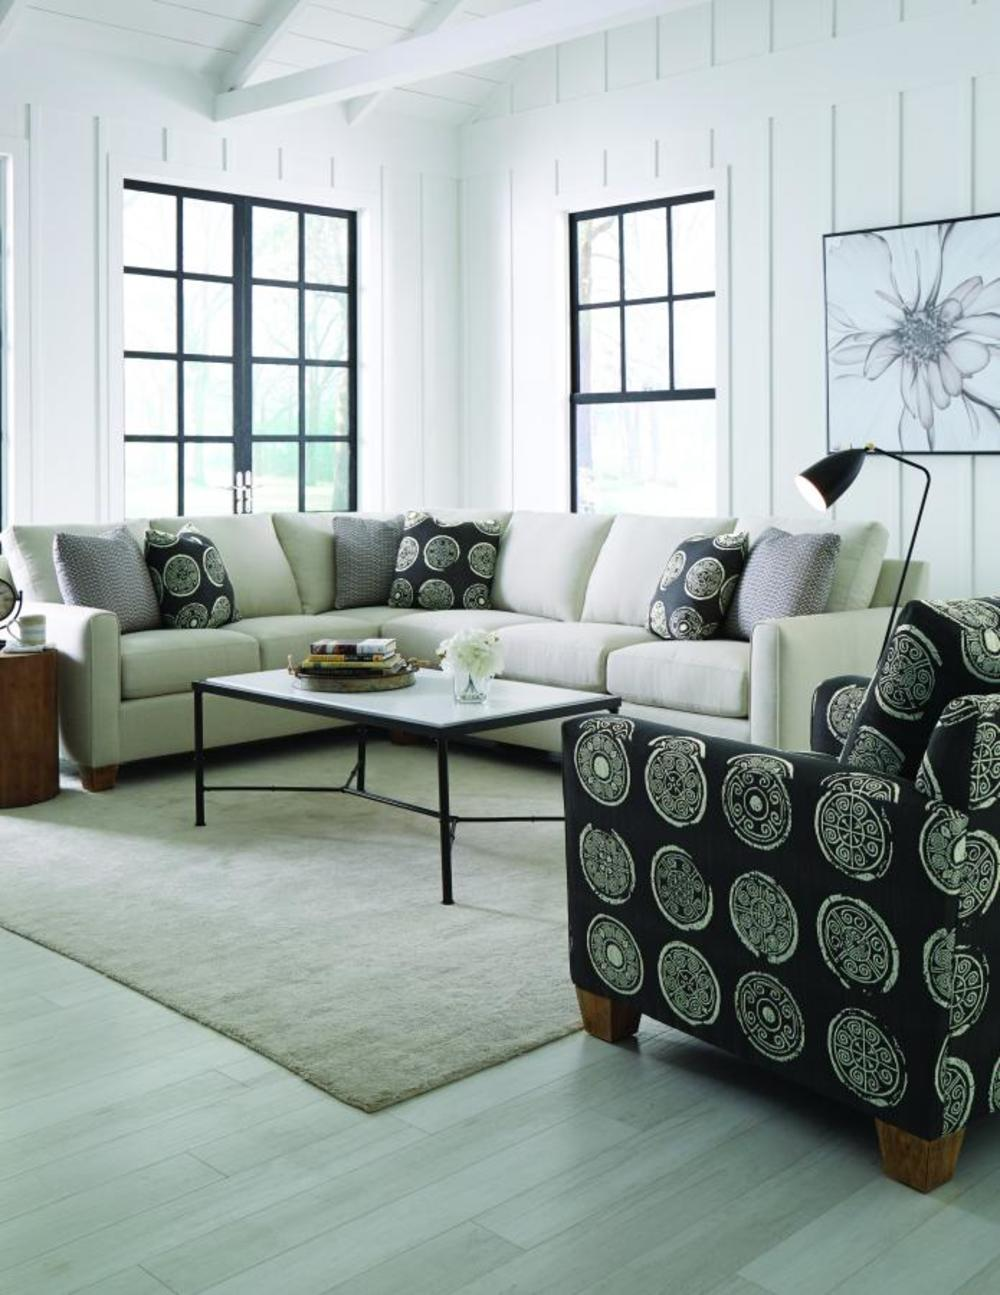 King Hickory - Darby Two Piece Sectional